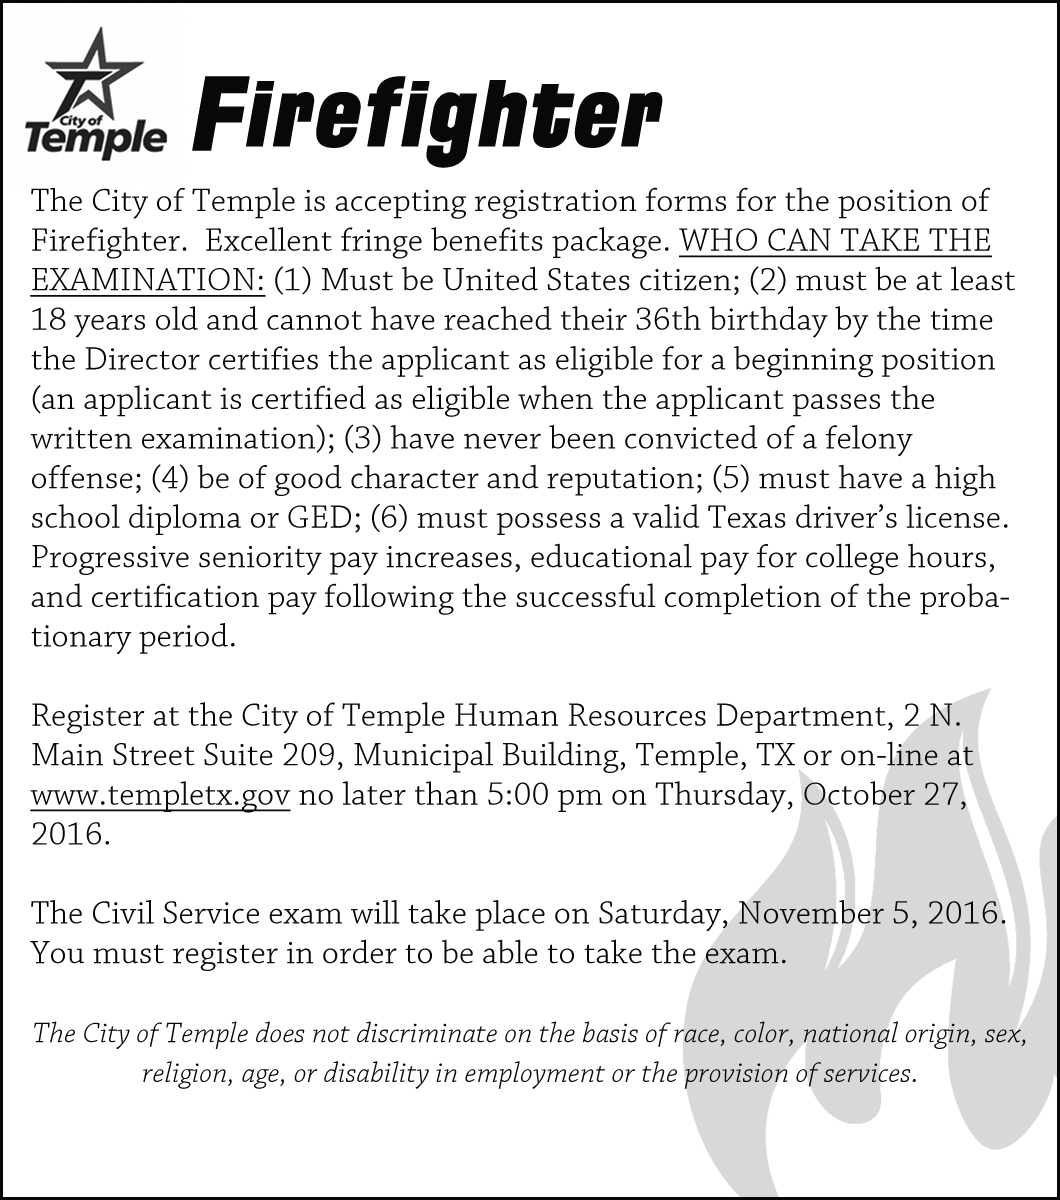 City of Temple - Firefighter